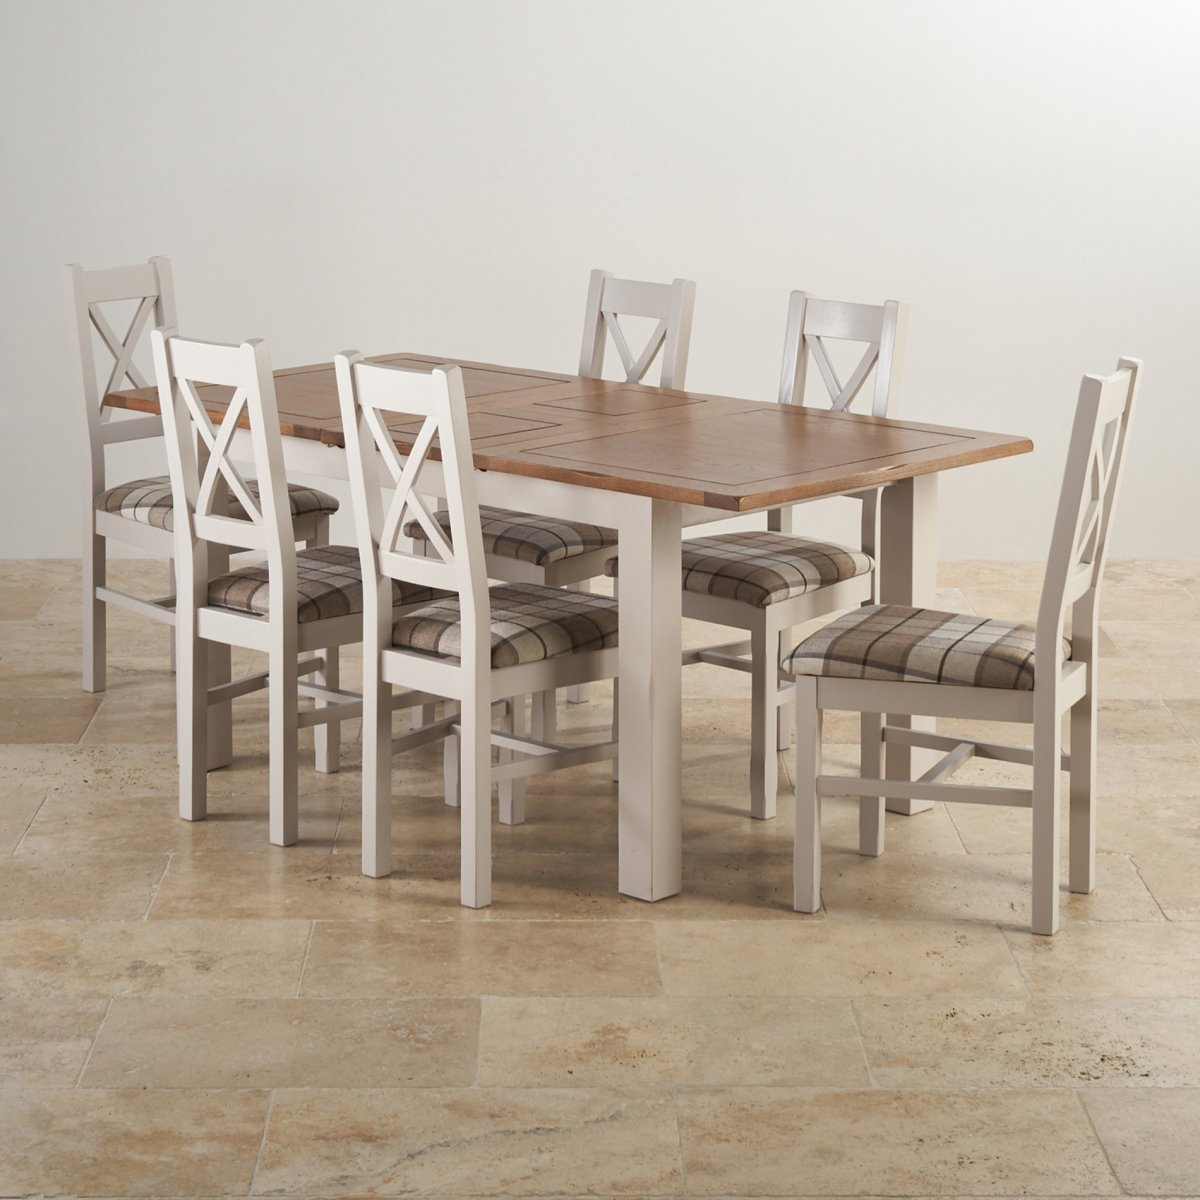 Extendable Dining Set In Rustic Brushed Solid Oak: Kemble Extending Dining Set: Table + 6 Charcoal Fabric Chairs